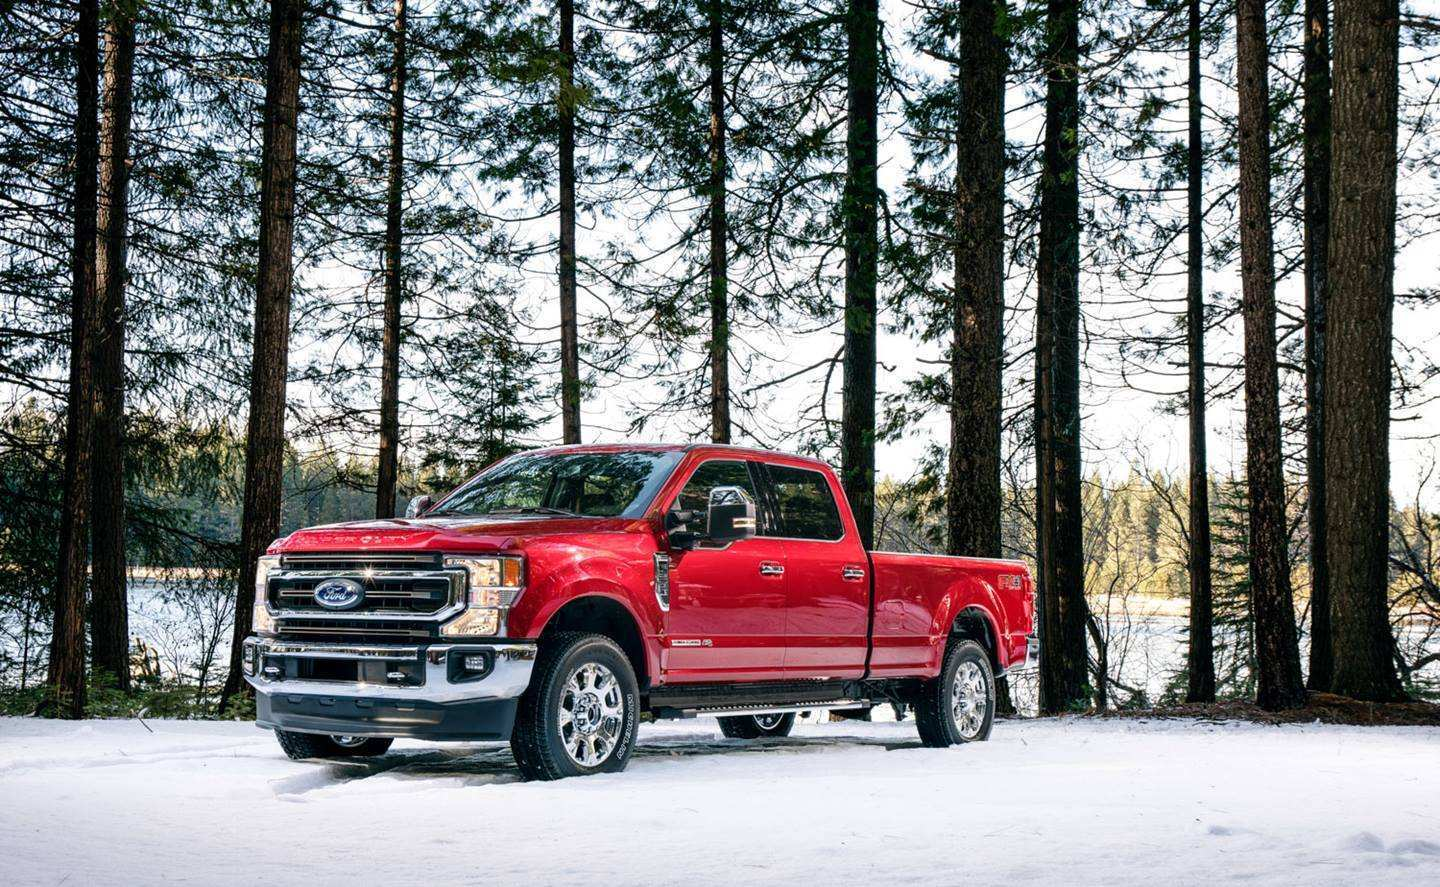 62 All New 2020 Ford F250 Style